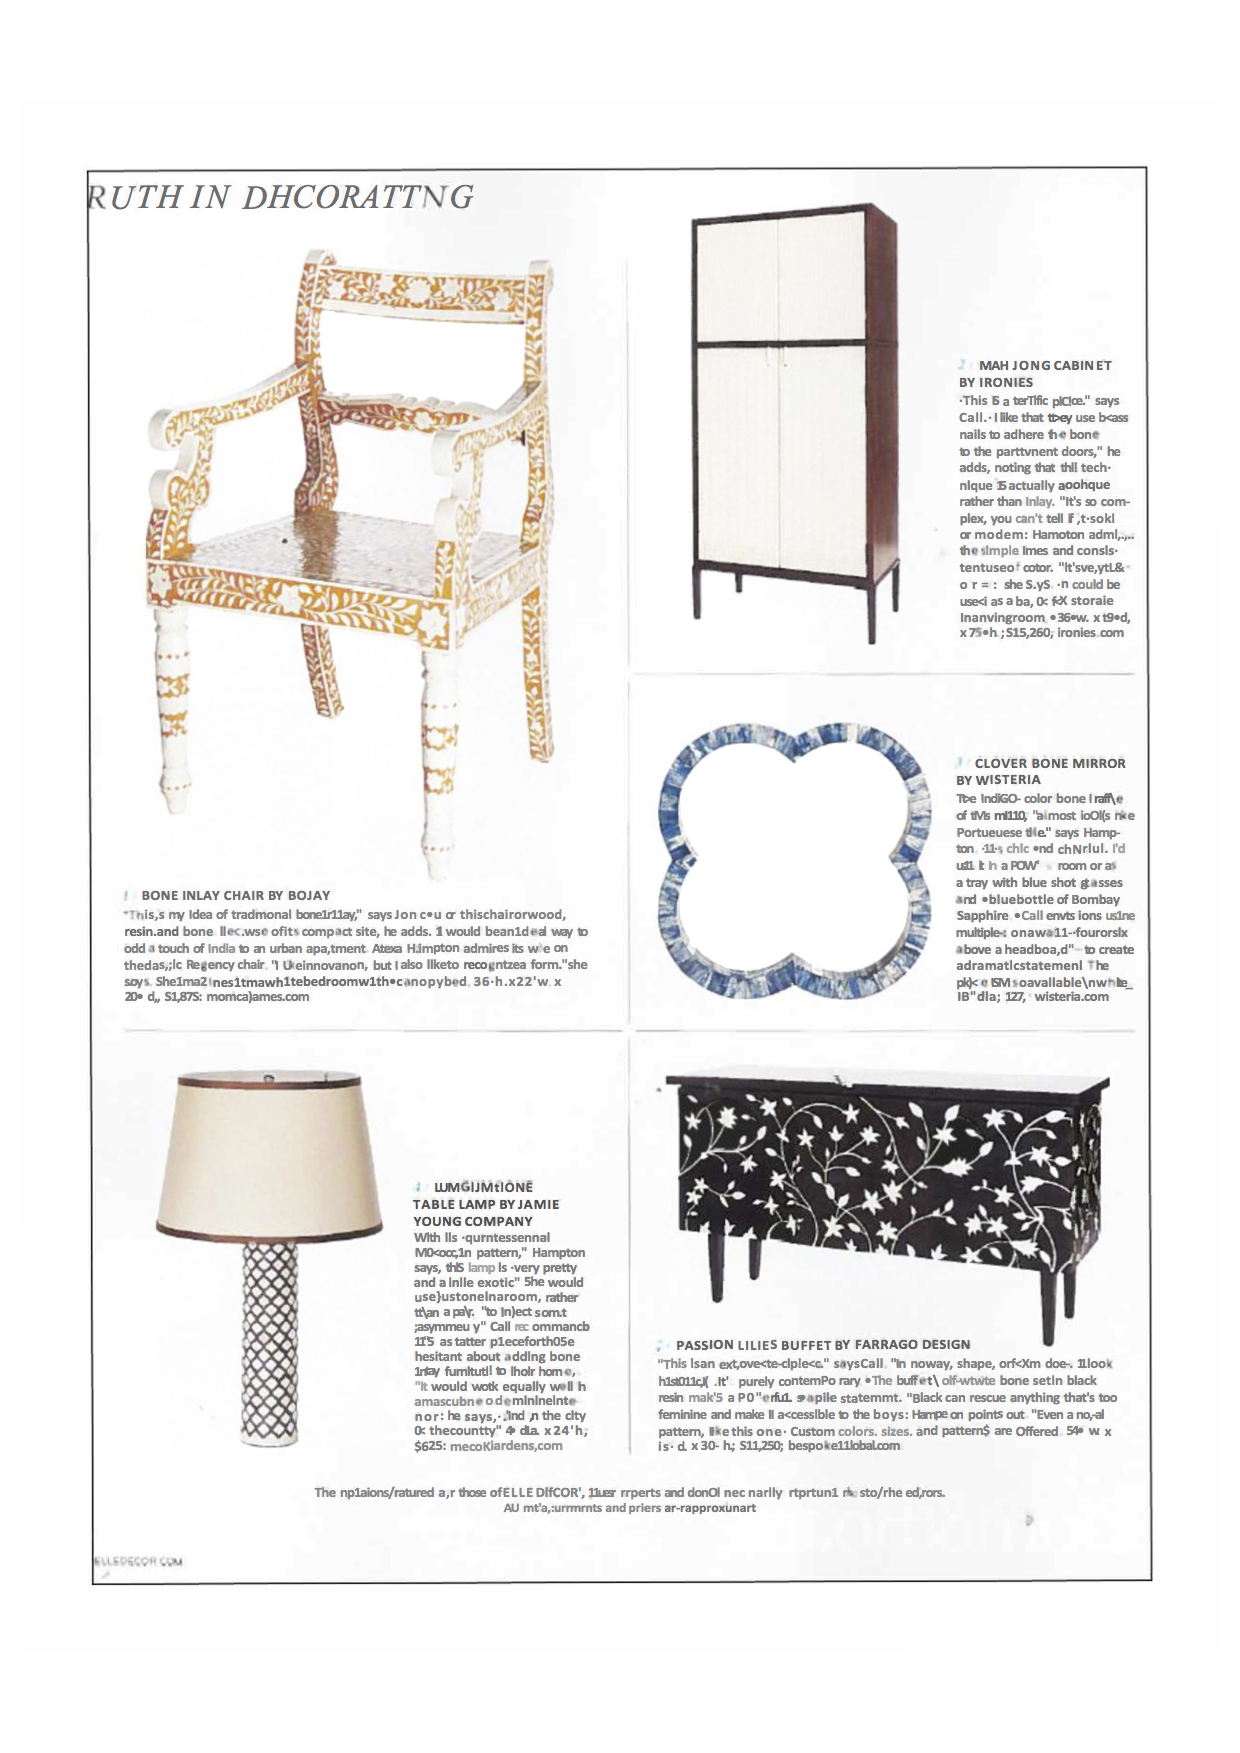 """Passion Lilies Buffet featured by Elle Design - The Passion Lilies Table was featured in Elle Decor.*This is an extroverted piece,"""" says call. """"In no way, shape, or form does it look historical. It's purely contemporary."""" The buffet's off-white bone set in black resin makes a powerful, graphics statement. """"Black can rescue anything that's too feminine and make it accessible to the boys."""" Hampton points out. """"Even a floral pattern, like this one.""""Download the article"""